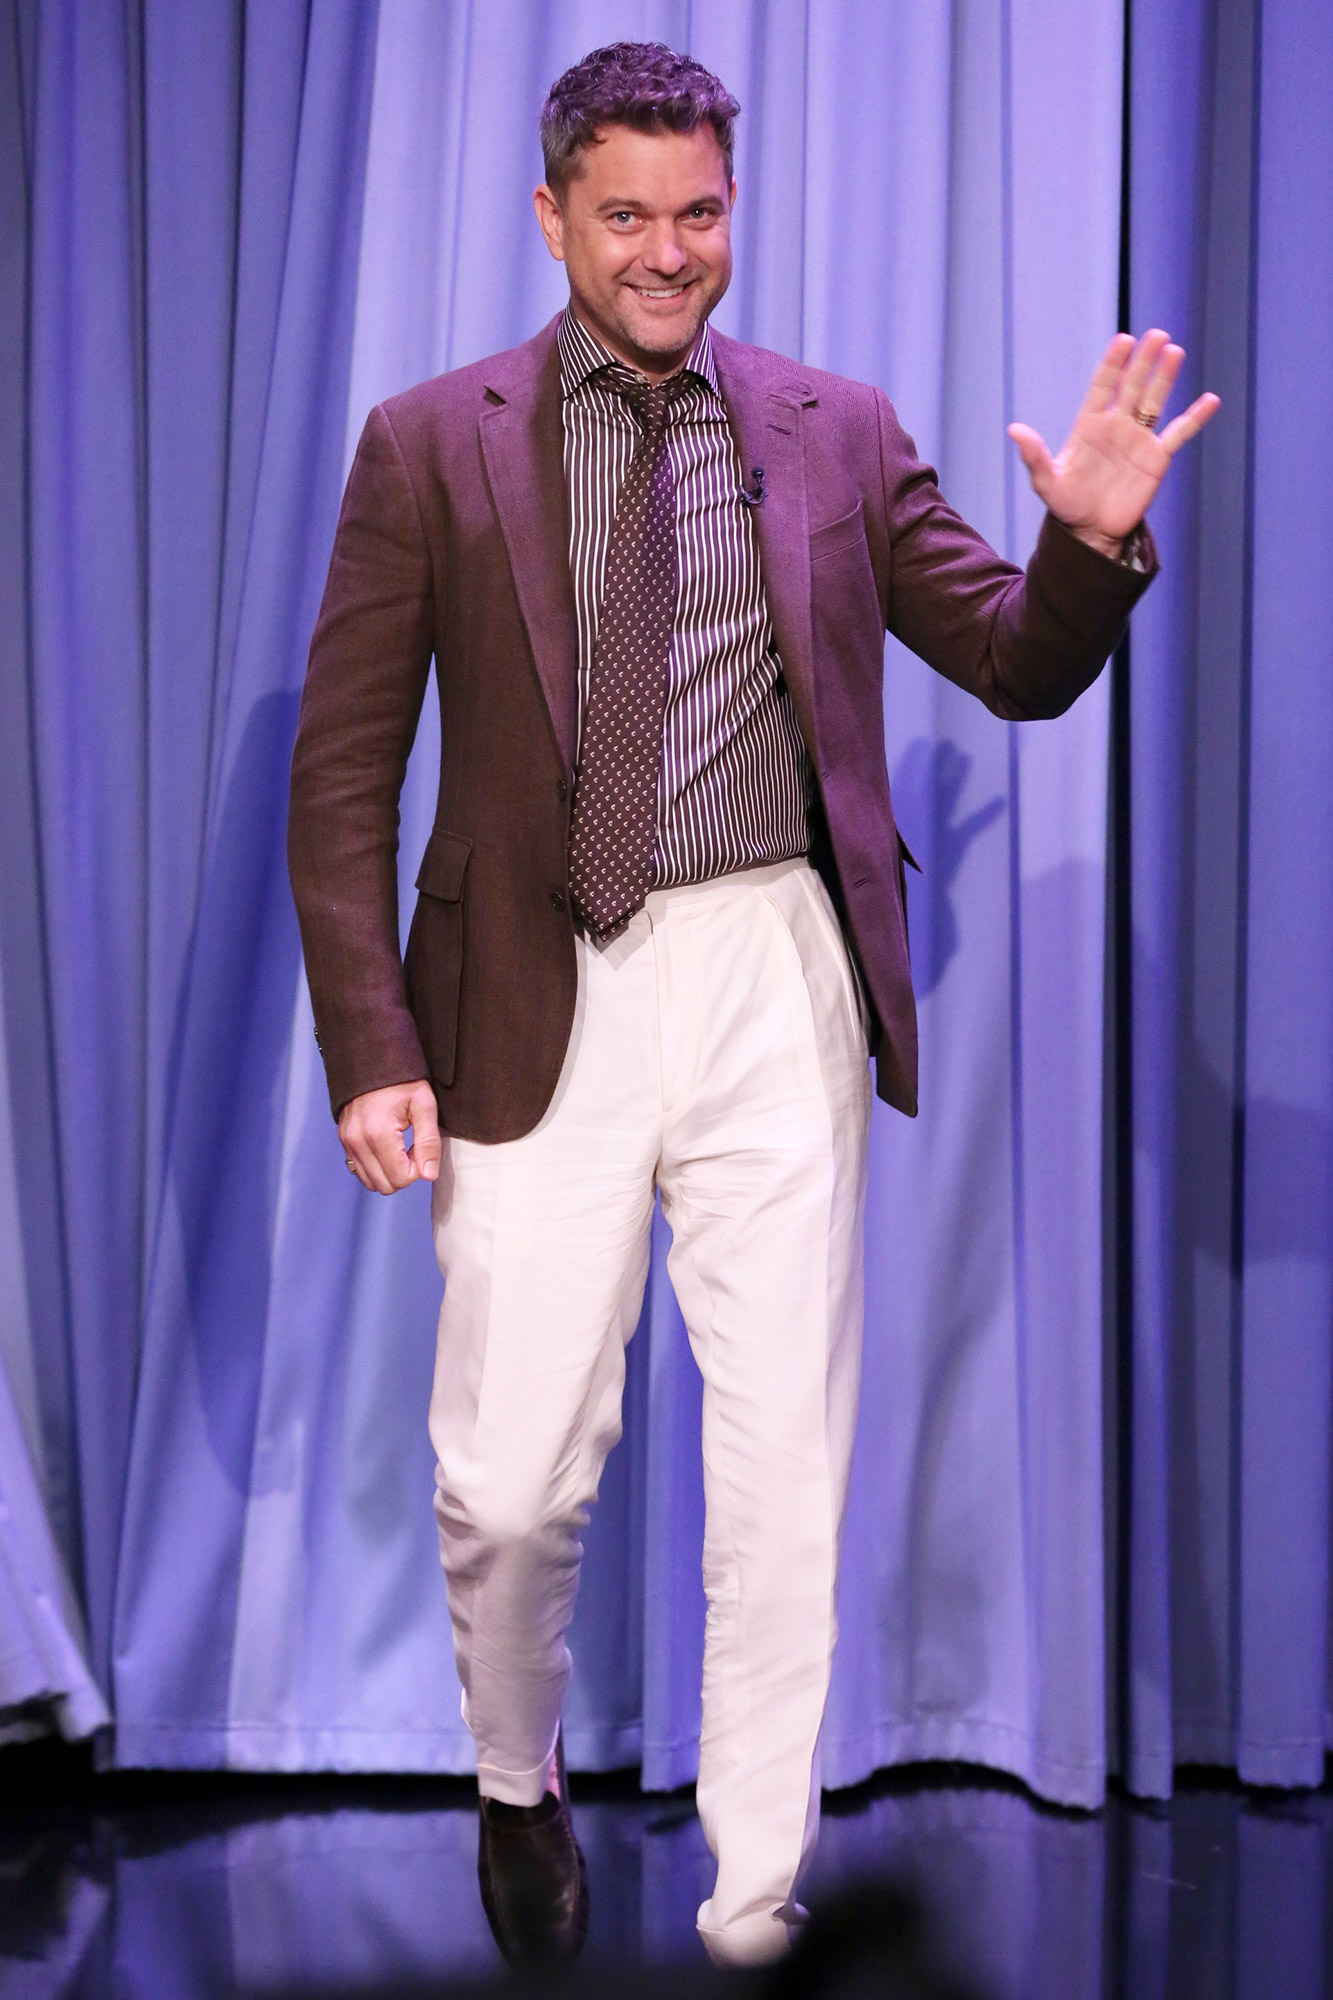 THE TONIGHT SHOW STARRING JIMMY FALLON -- Episode 1492 -- Pictured: Actor Joshua Jackson arrives on Monday, July 19, 2021